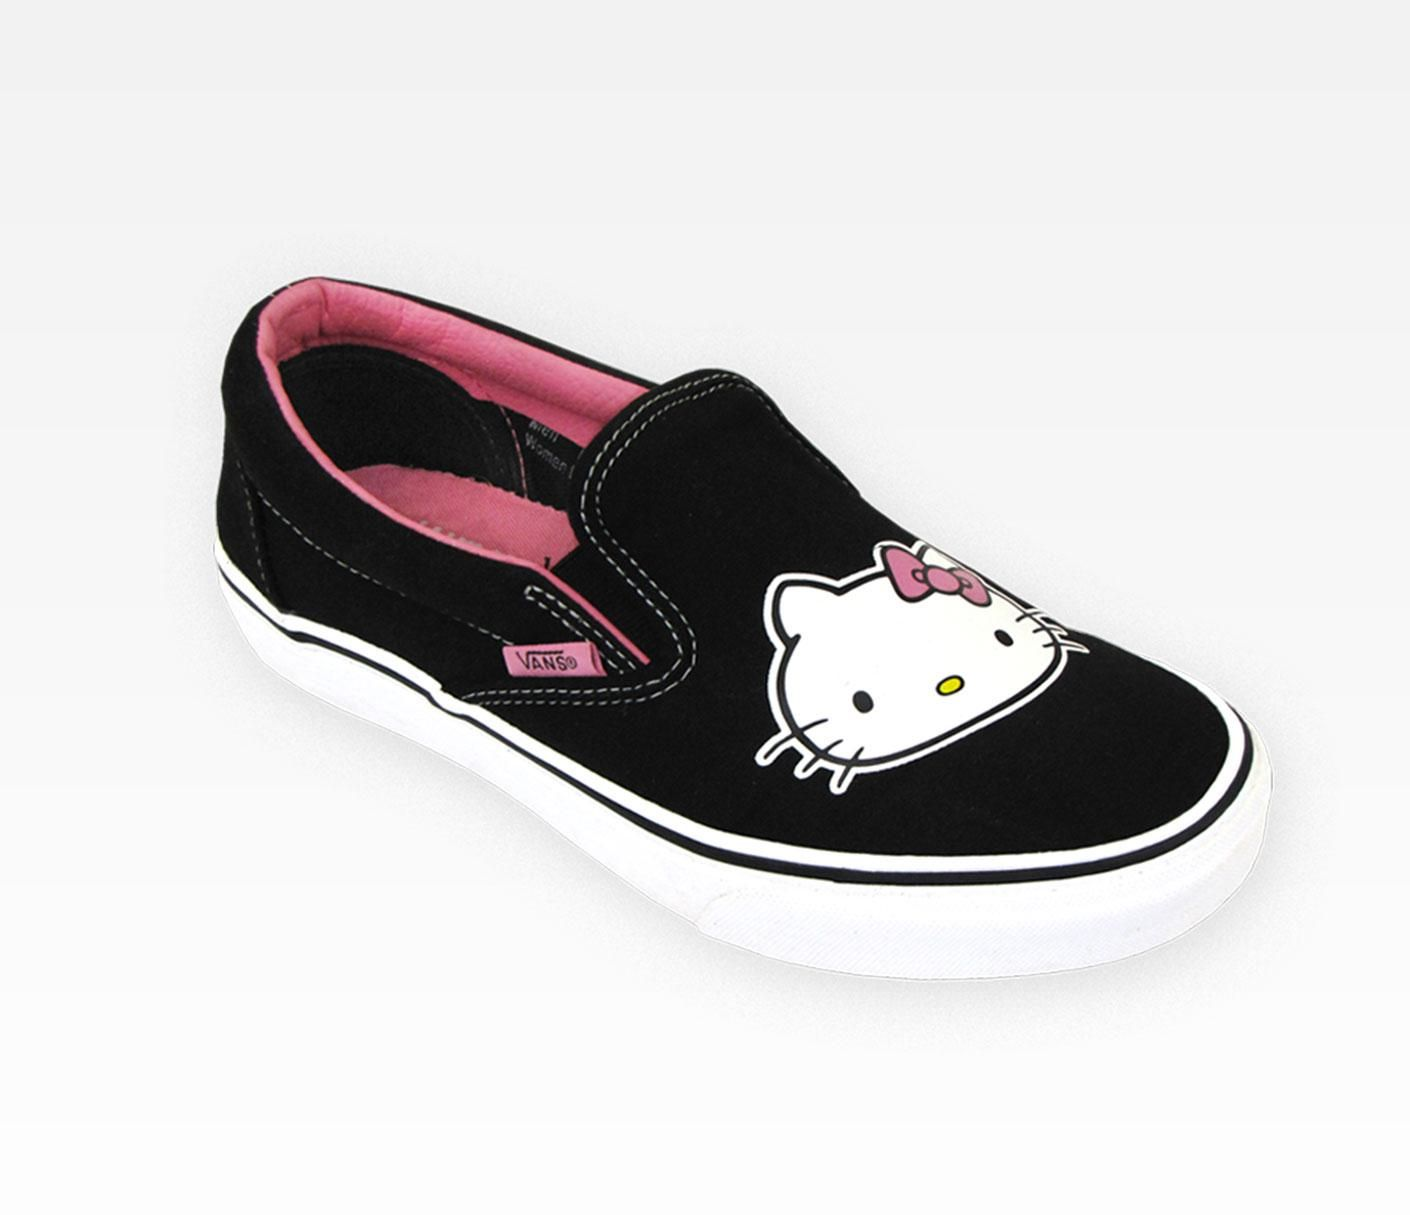 5b5c32f82d Hello Kitty Adult Classic Sneakers  Slip-On